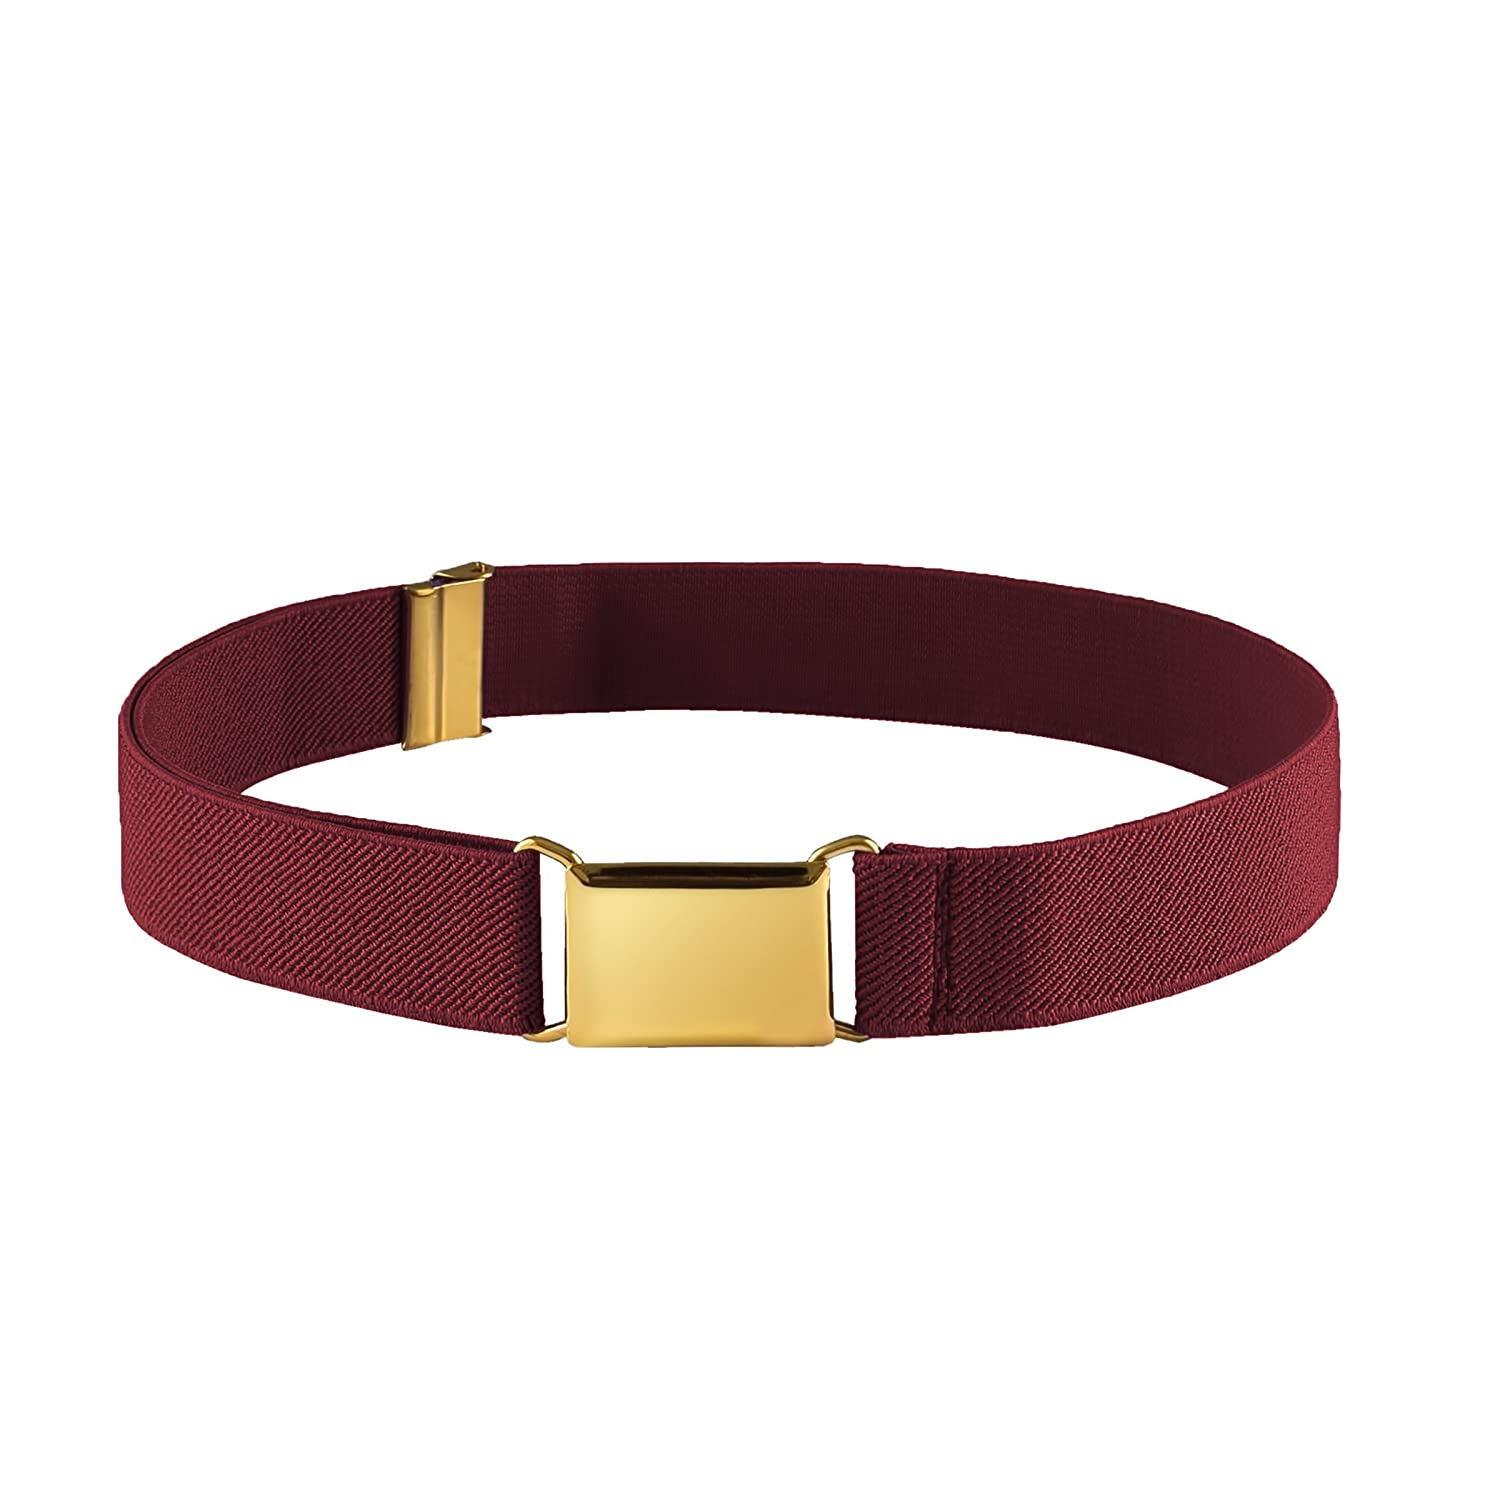 FIT RITE Kids Elastic Adjustable Stretch Belt With Gold Square Buckle 1991